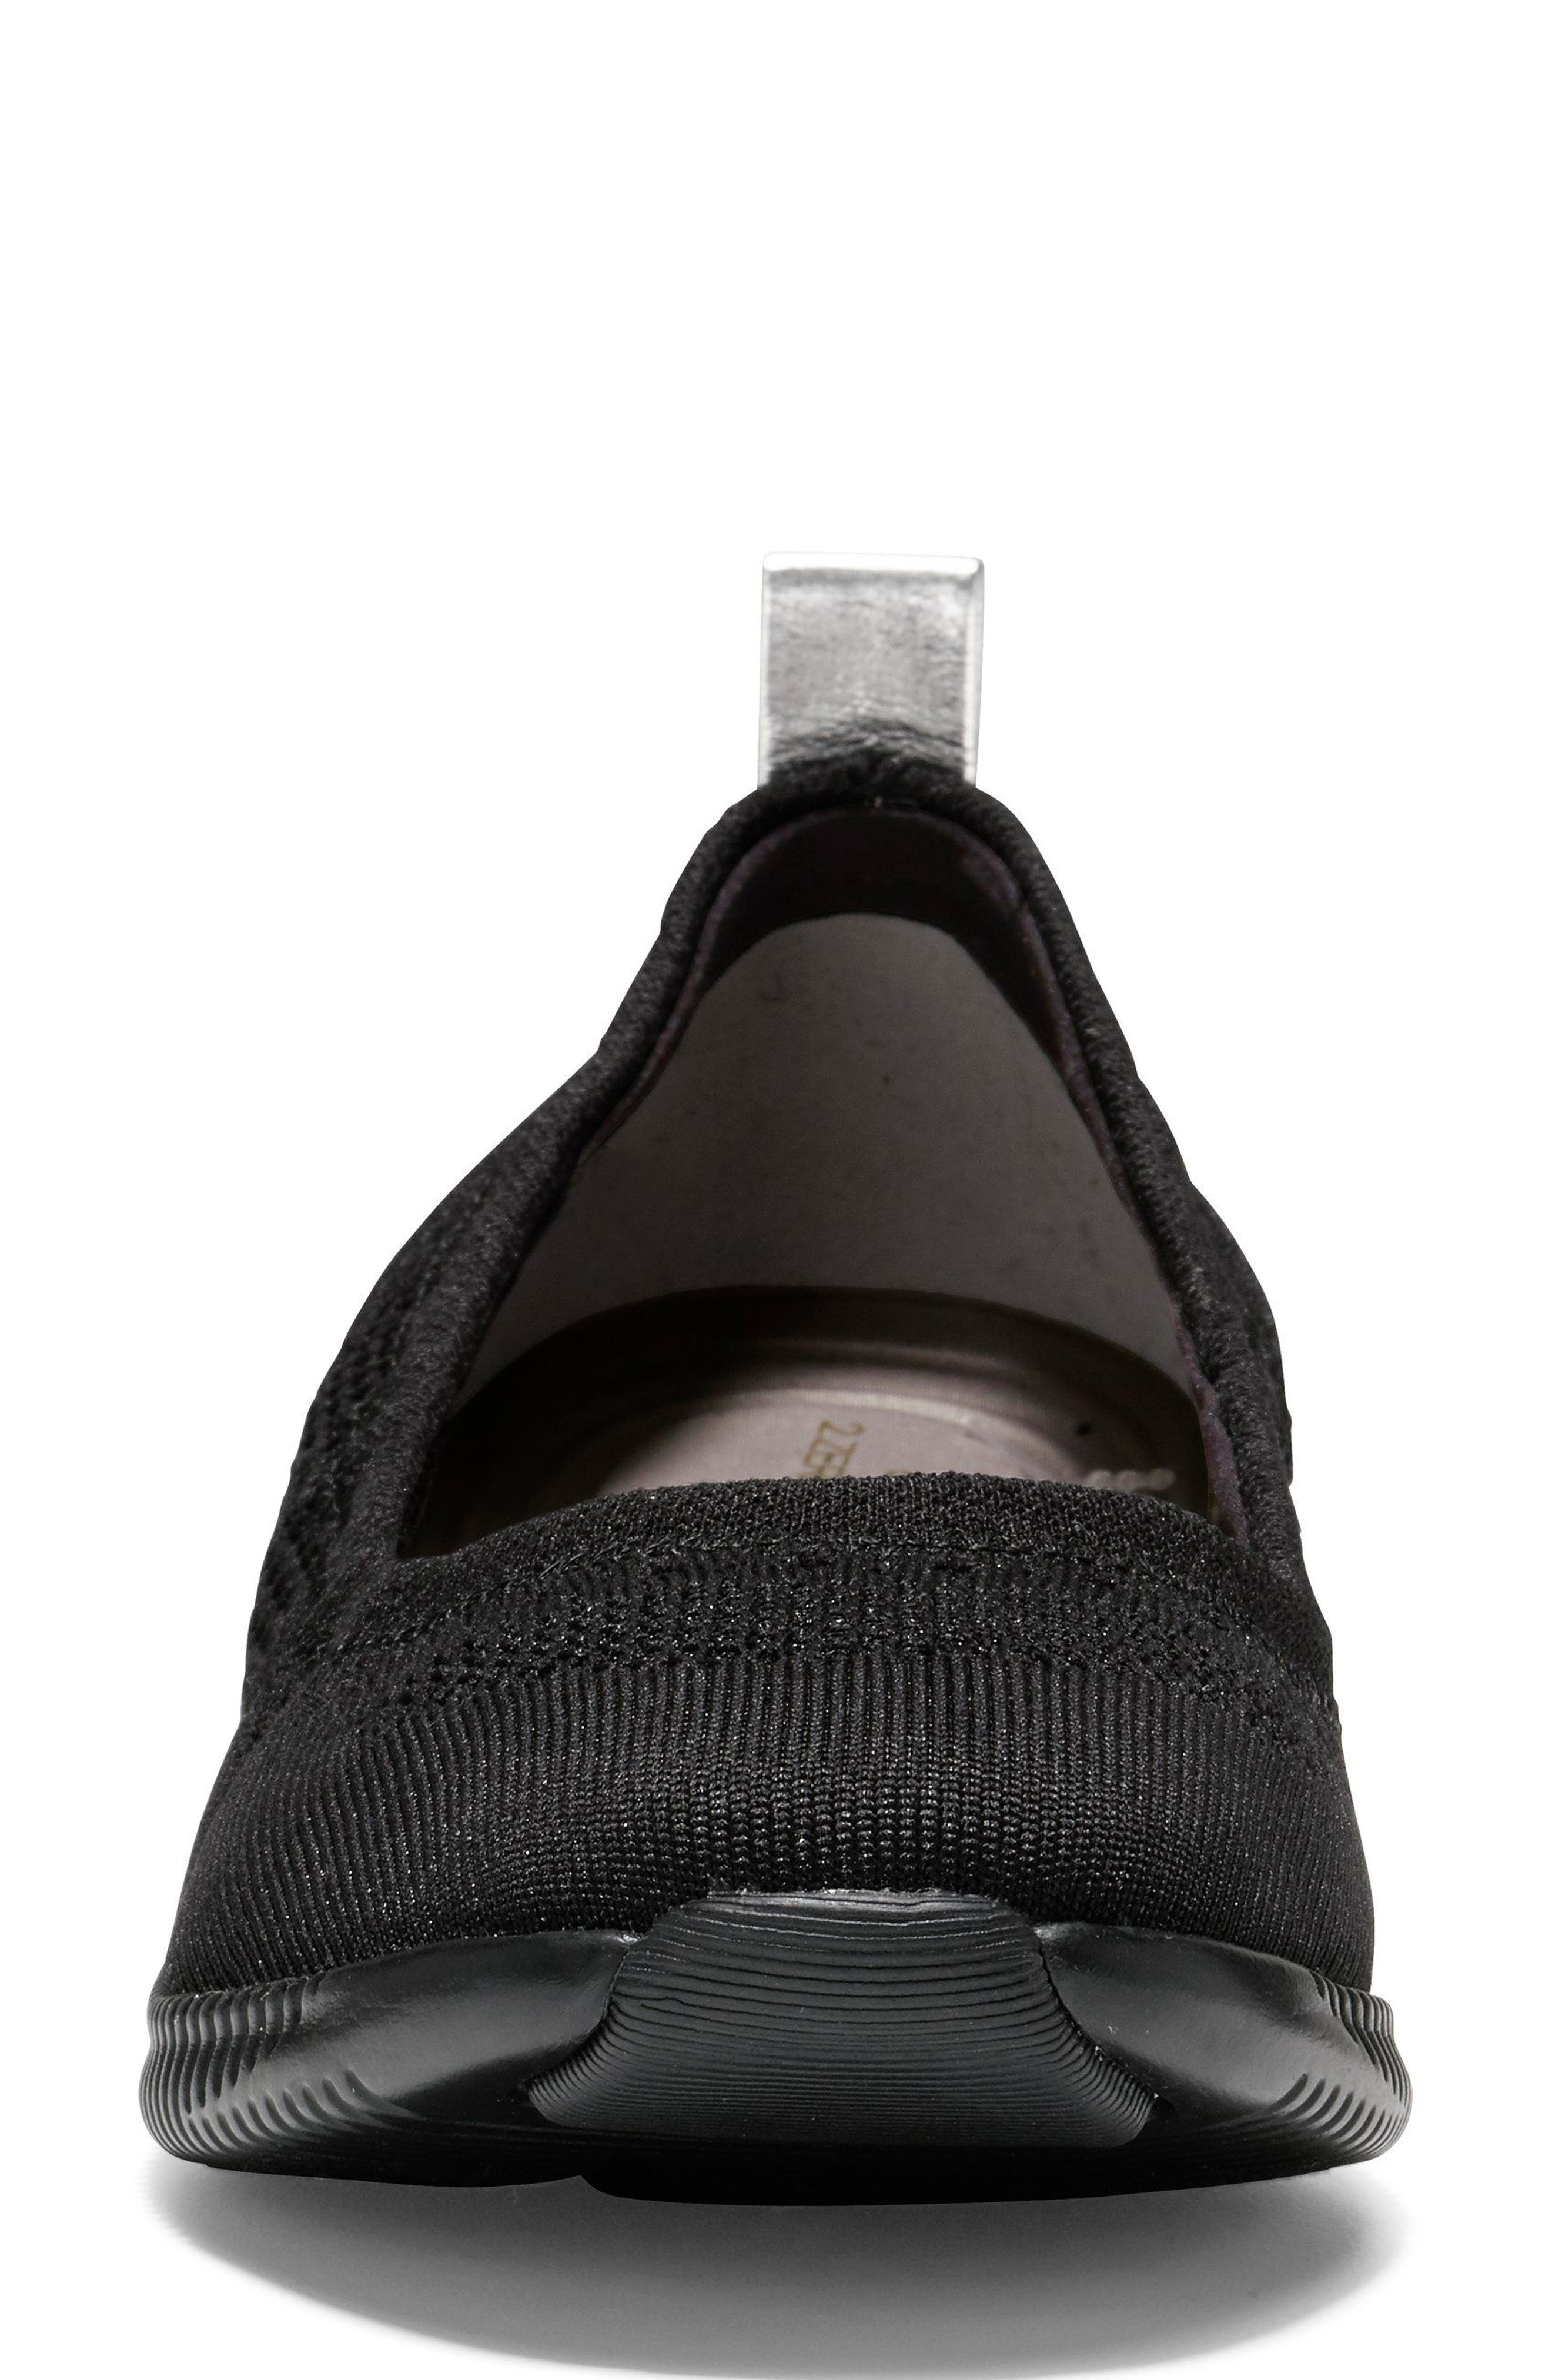 COLE HAAN, 2.ZERØGRAND Stitchlite Ballet Flat, Alternate thumbnail 4, color, BLACK FABRIC